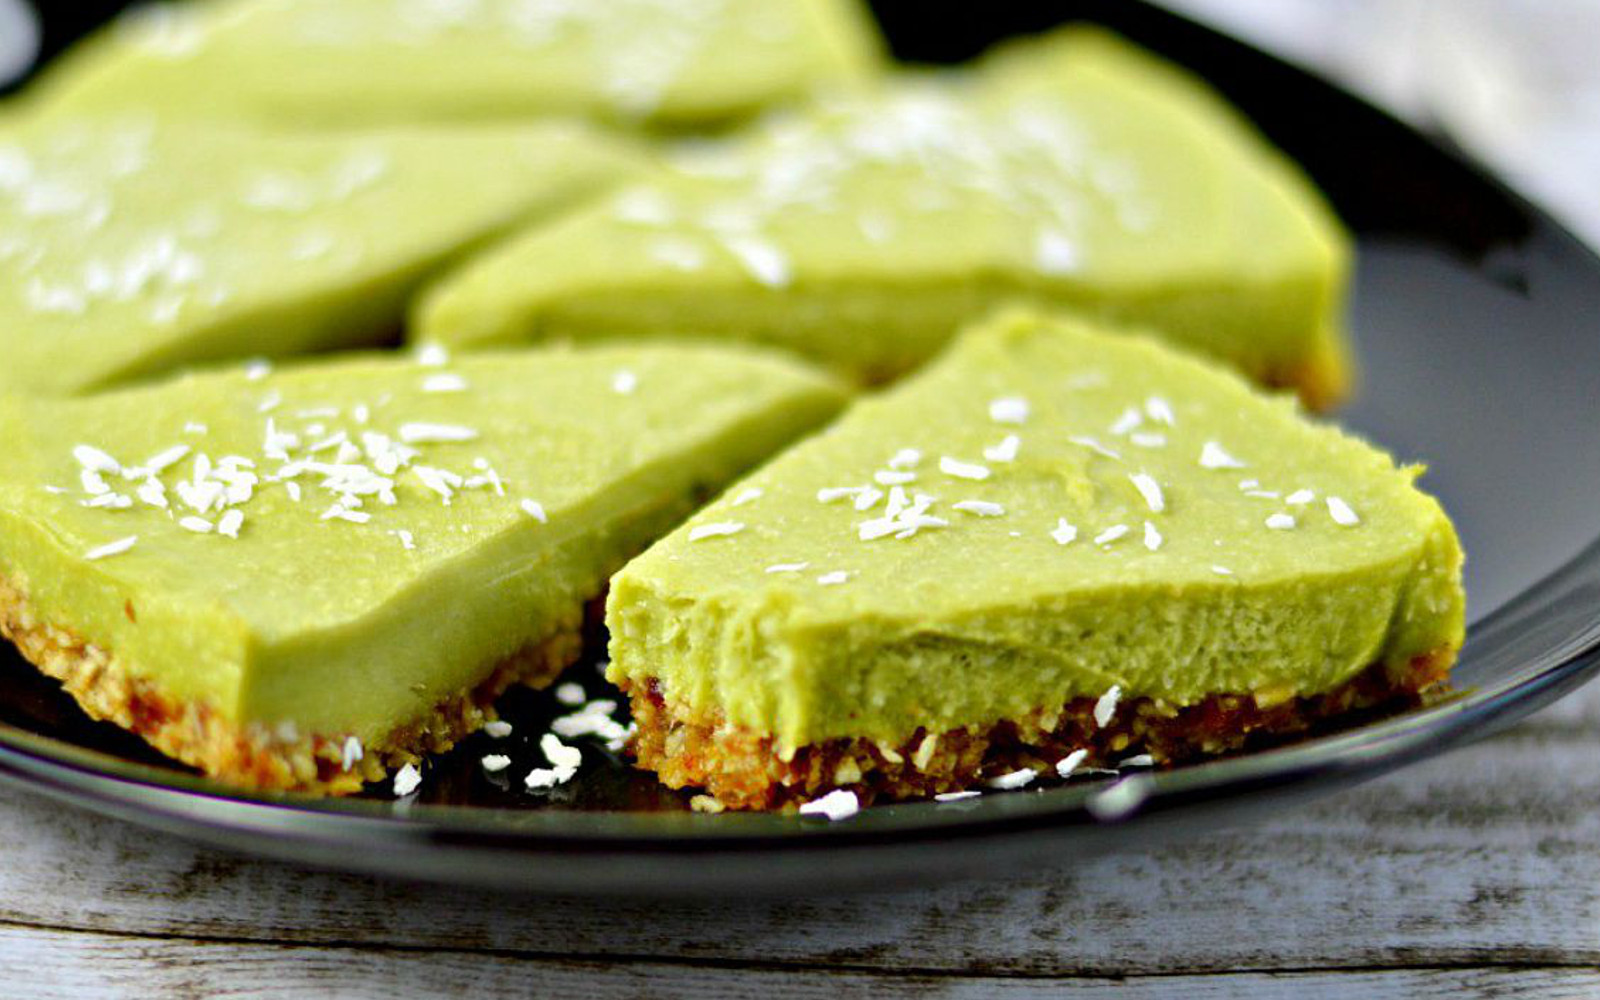 Naturally Delicious Key Lime Pie